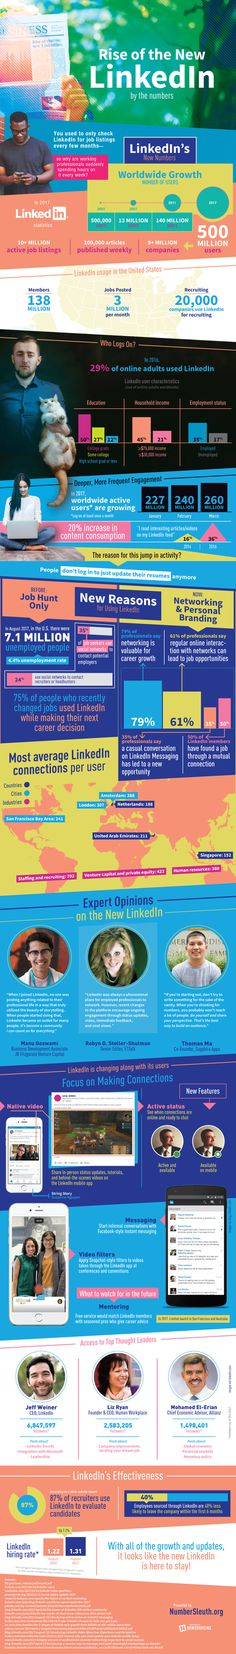 The New LinkedIn - learn all about the new linkedin by the numbers.